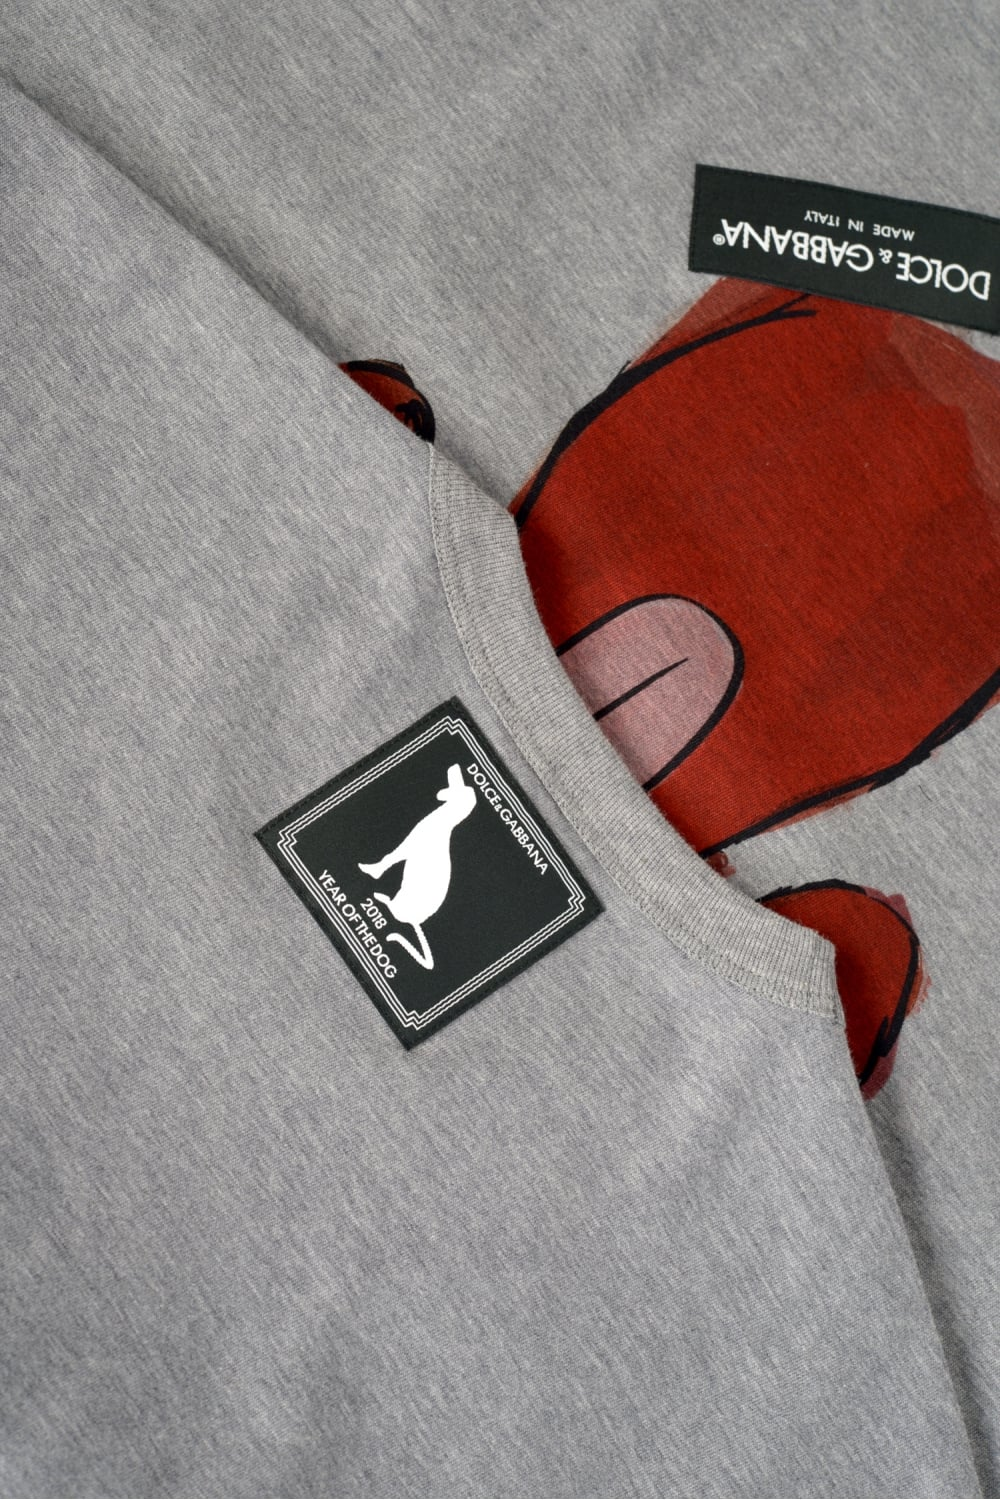 ca56d543 Dolce Gabbana Dog Sweatshirt | The Art of Mike Mignola